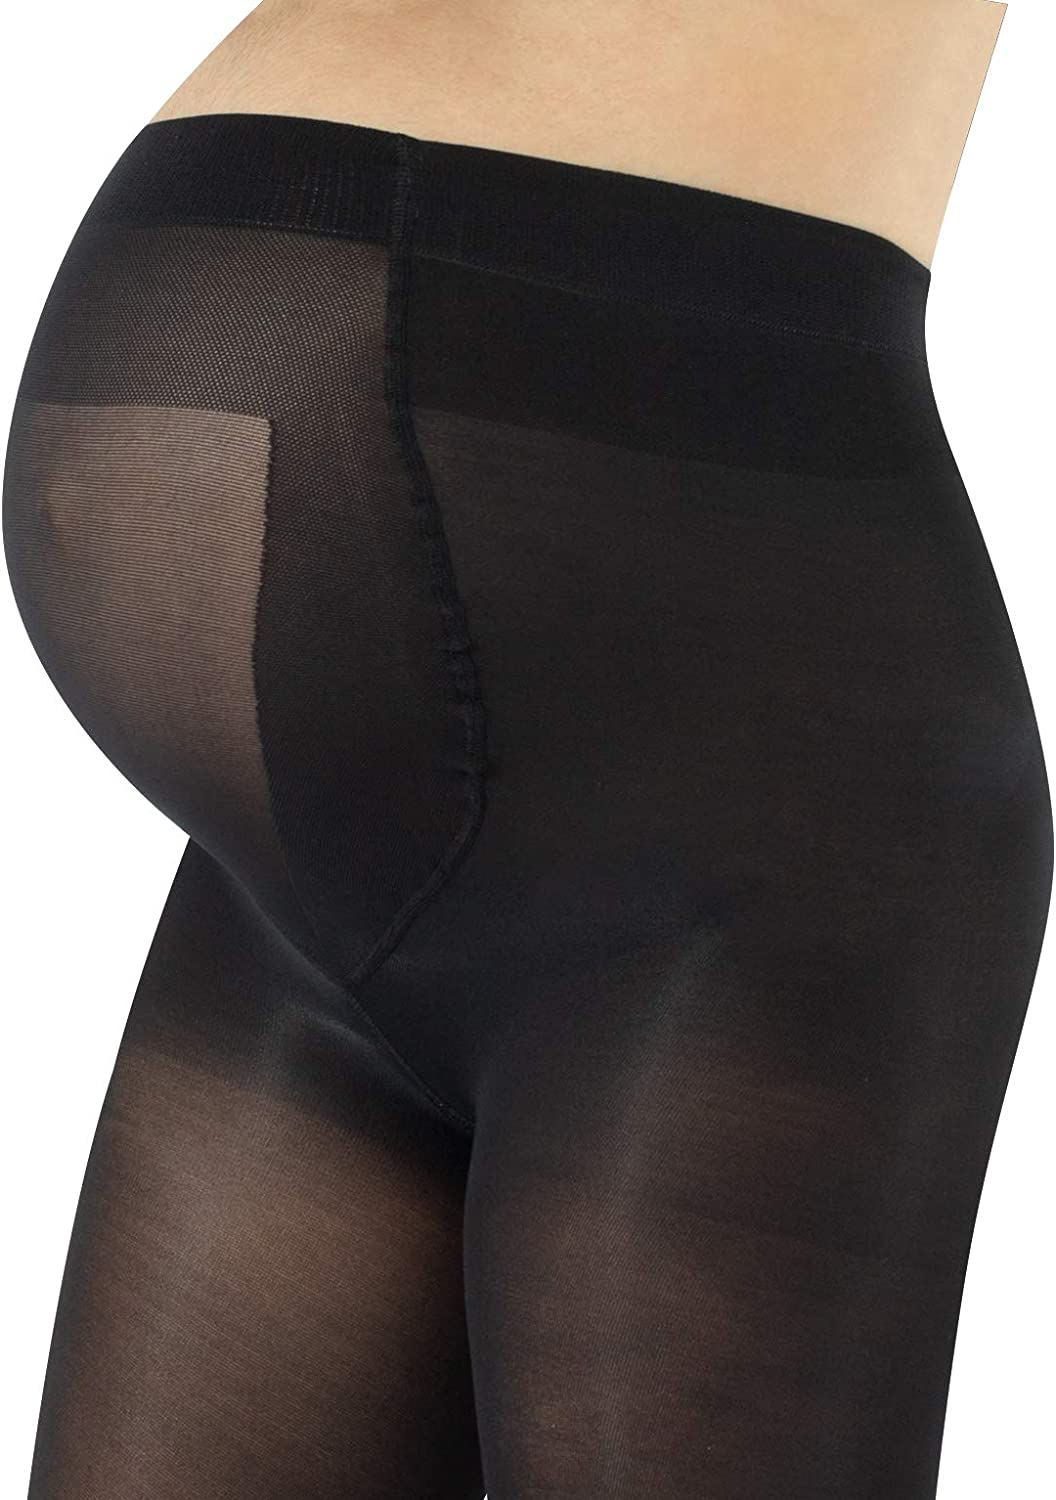 XL Comfort Fit for Pregnant Silhouette Maternity Tights 100 Denier size M